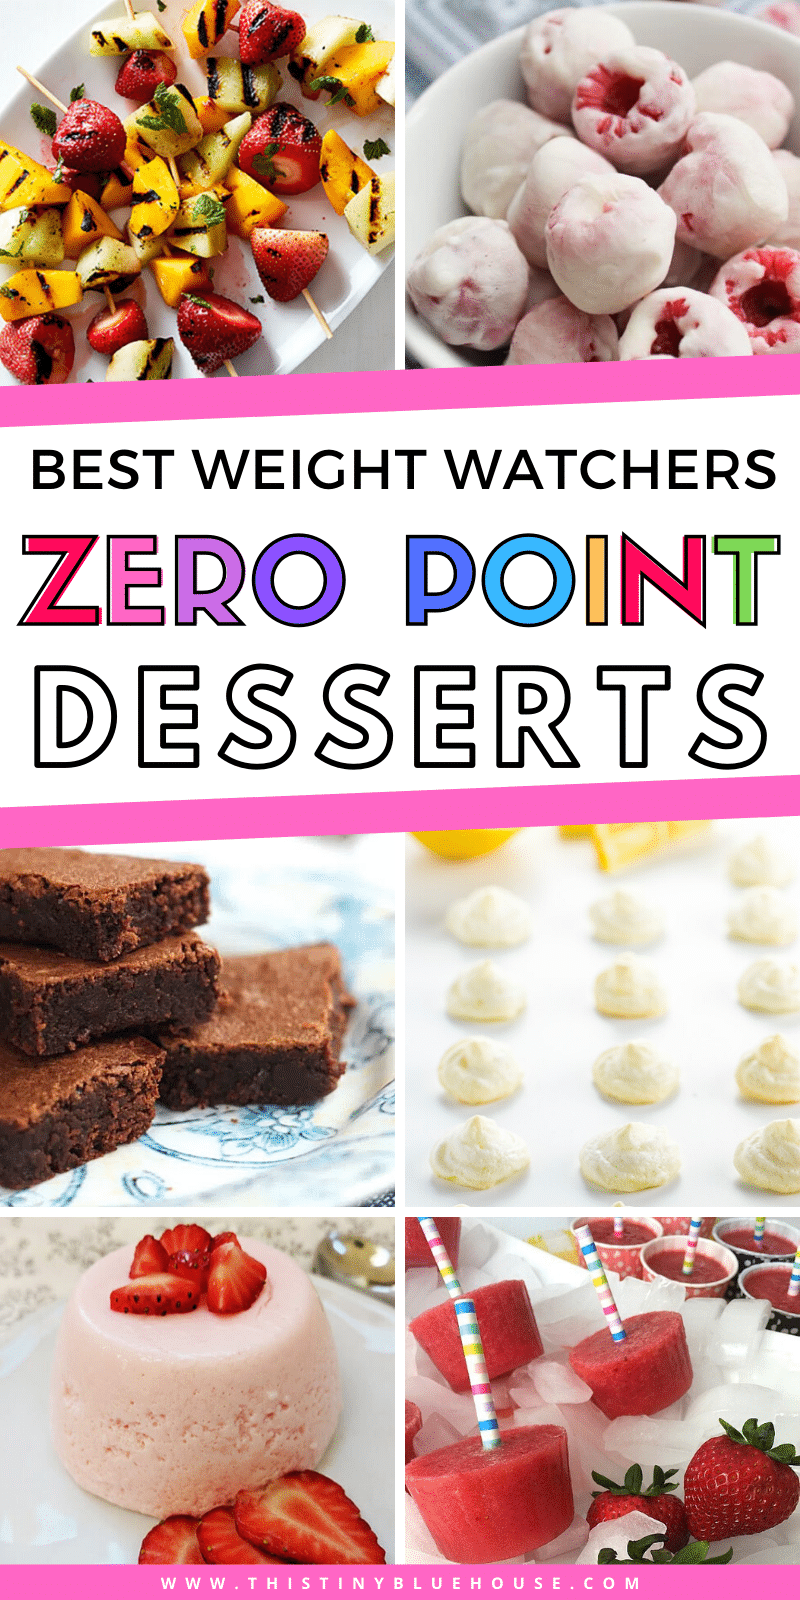 Here are 10+ zero point weight watchers desserts from the ultimate collection of Zero Point Weight Watchers Meals, Snacks and desserts. From apps to main meals and even desserts these zero point weight watchers meal ideas are guaranteed to keep your diet interesting. #weightwatchers #weightwatchersforfree #weightwatchersrecipeswithpoints #weightwatchersfreestyle #weightwatcherssnacks #weightwatchersdesserts #weightwatcherszeropoint #weightwatcherzeropointrecipes #weightwatcherszeropointmeals #weightwatcherszeropointsnacks #weightwatcherszeropointdesserts